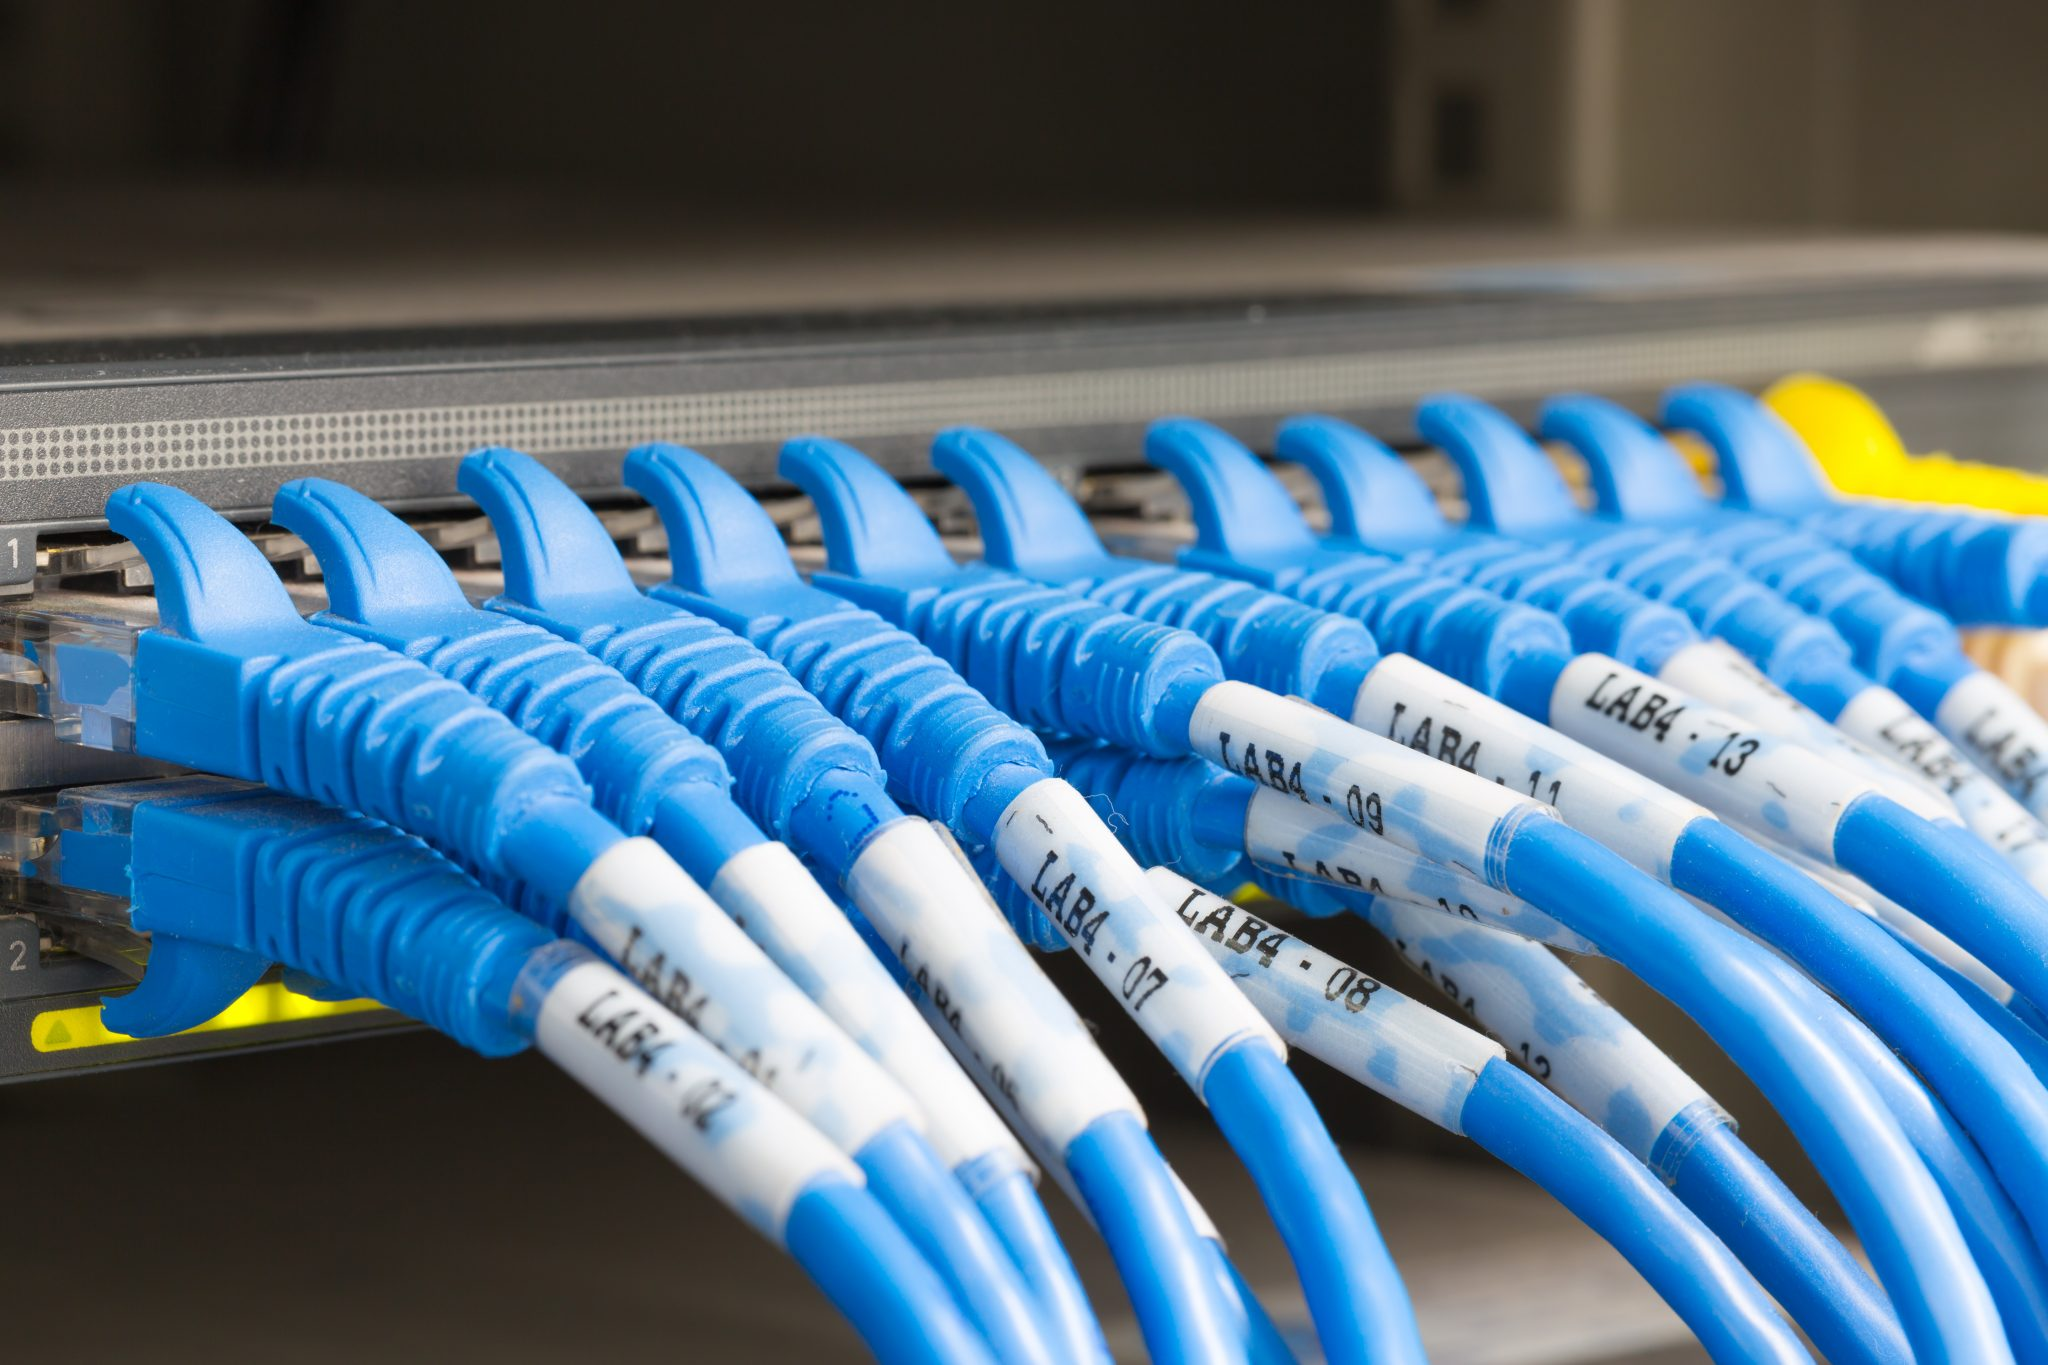 network cables connected to router ports